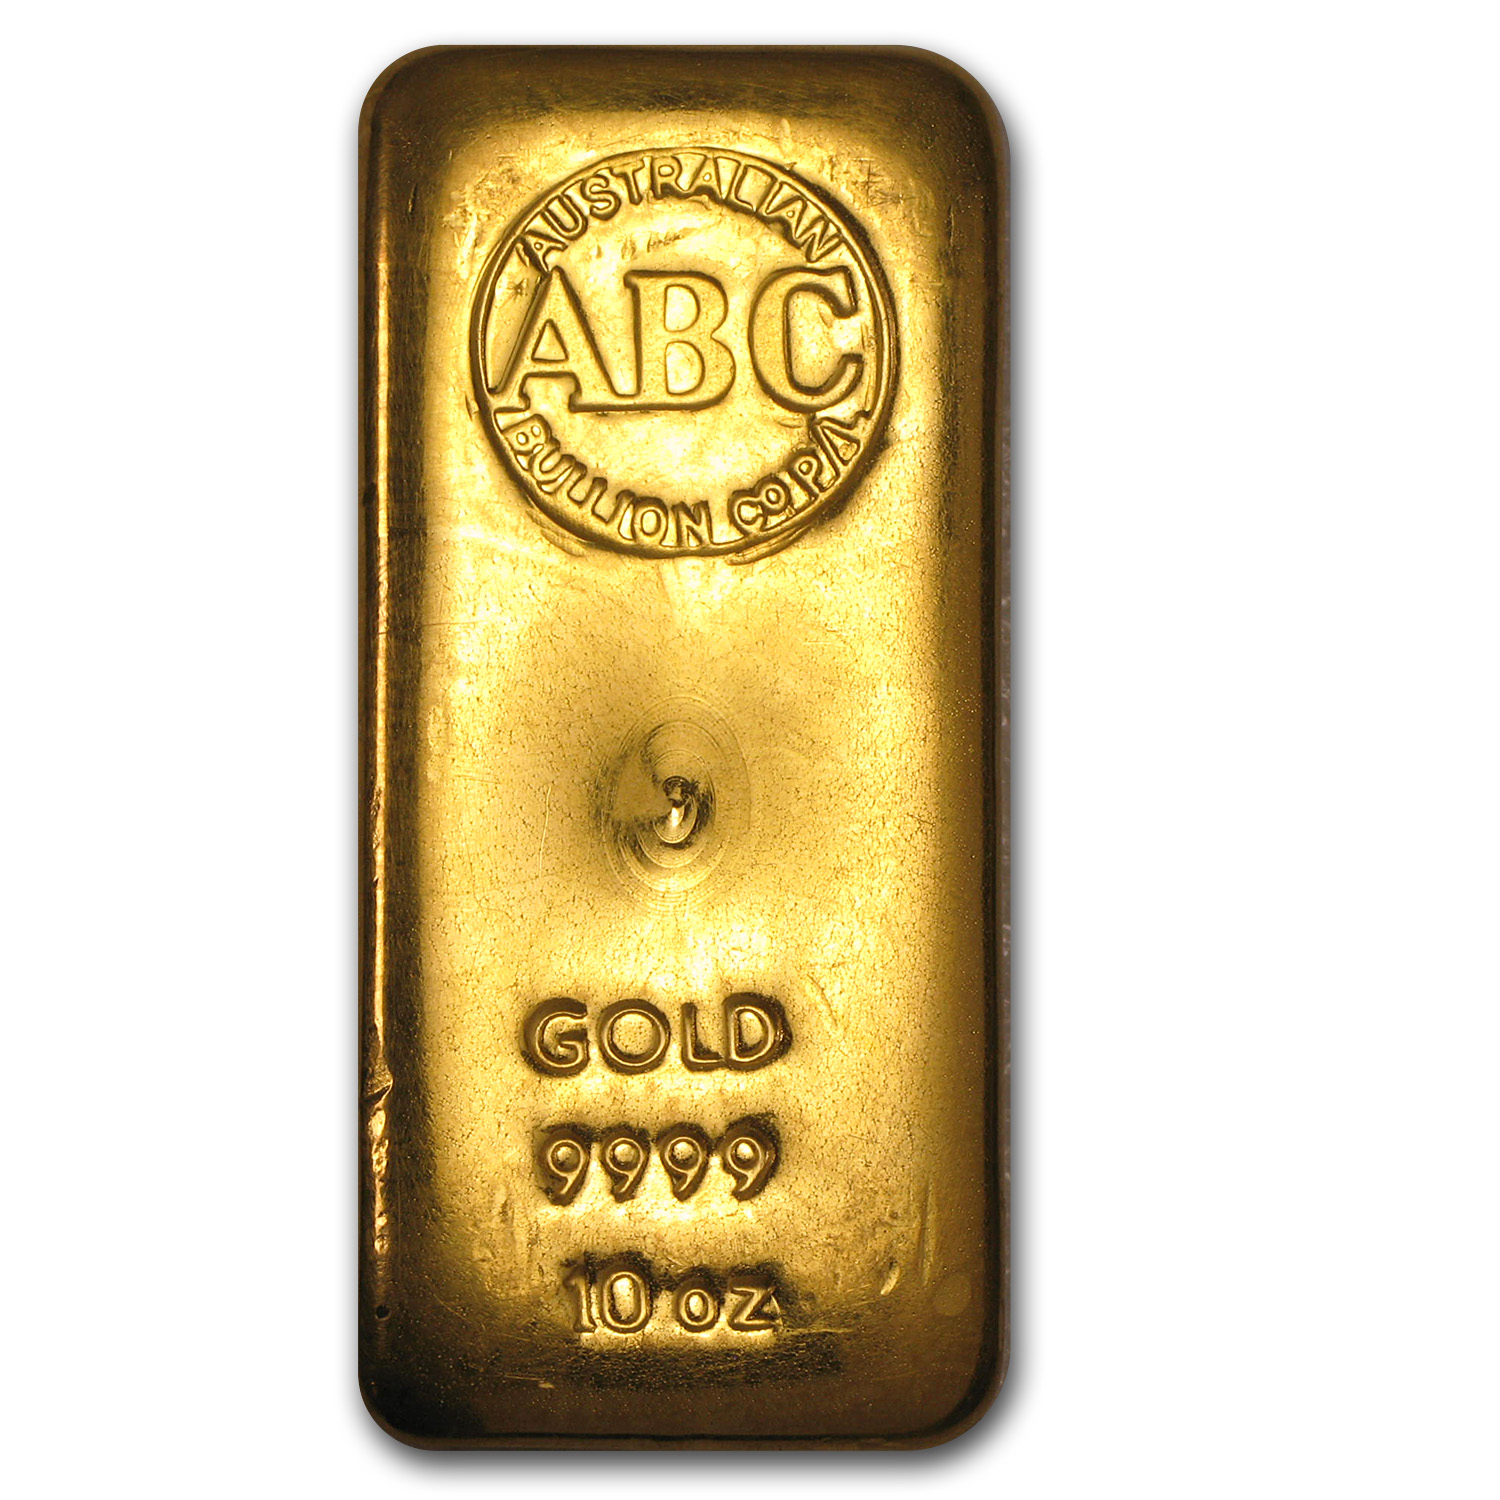 10 oz Gold Bar - Australian Bullion Co. (Loaf-Style)